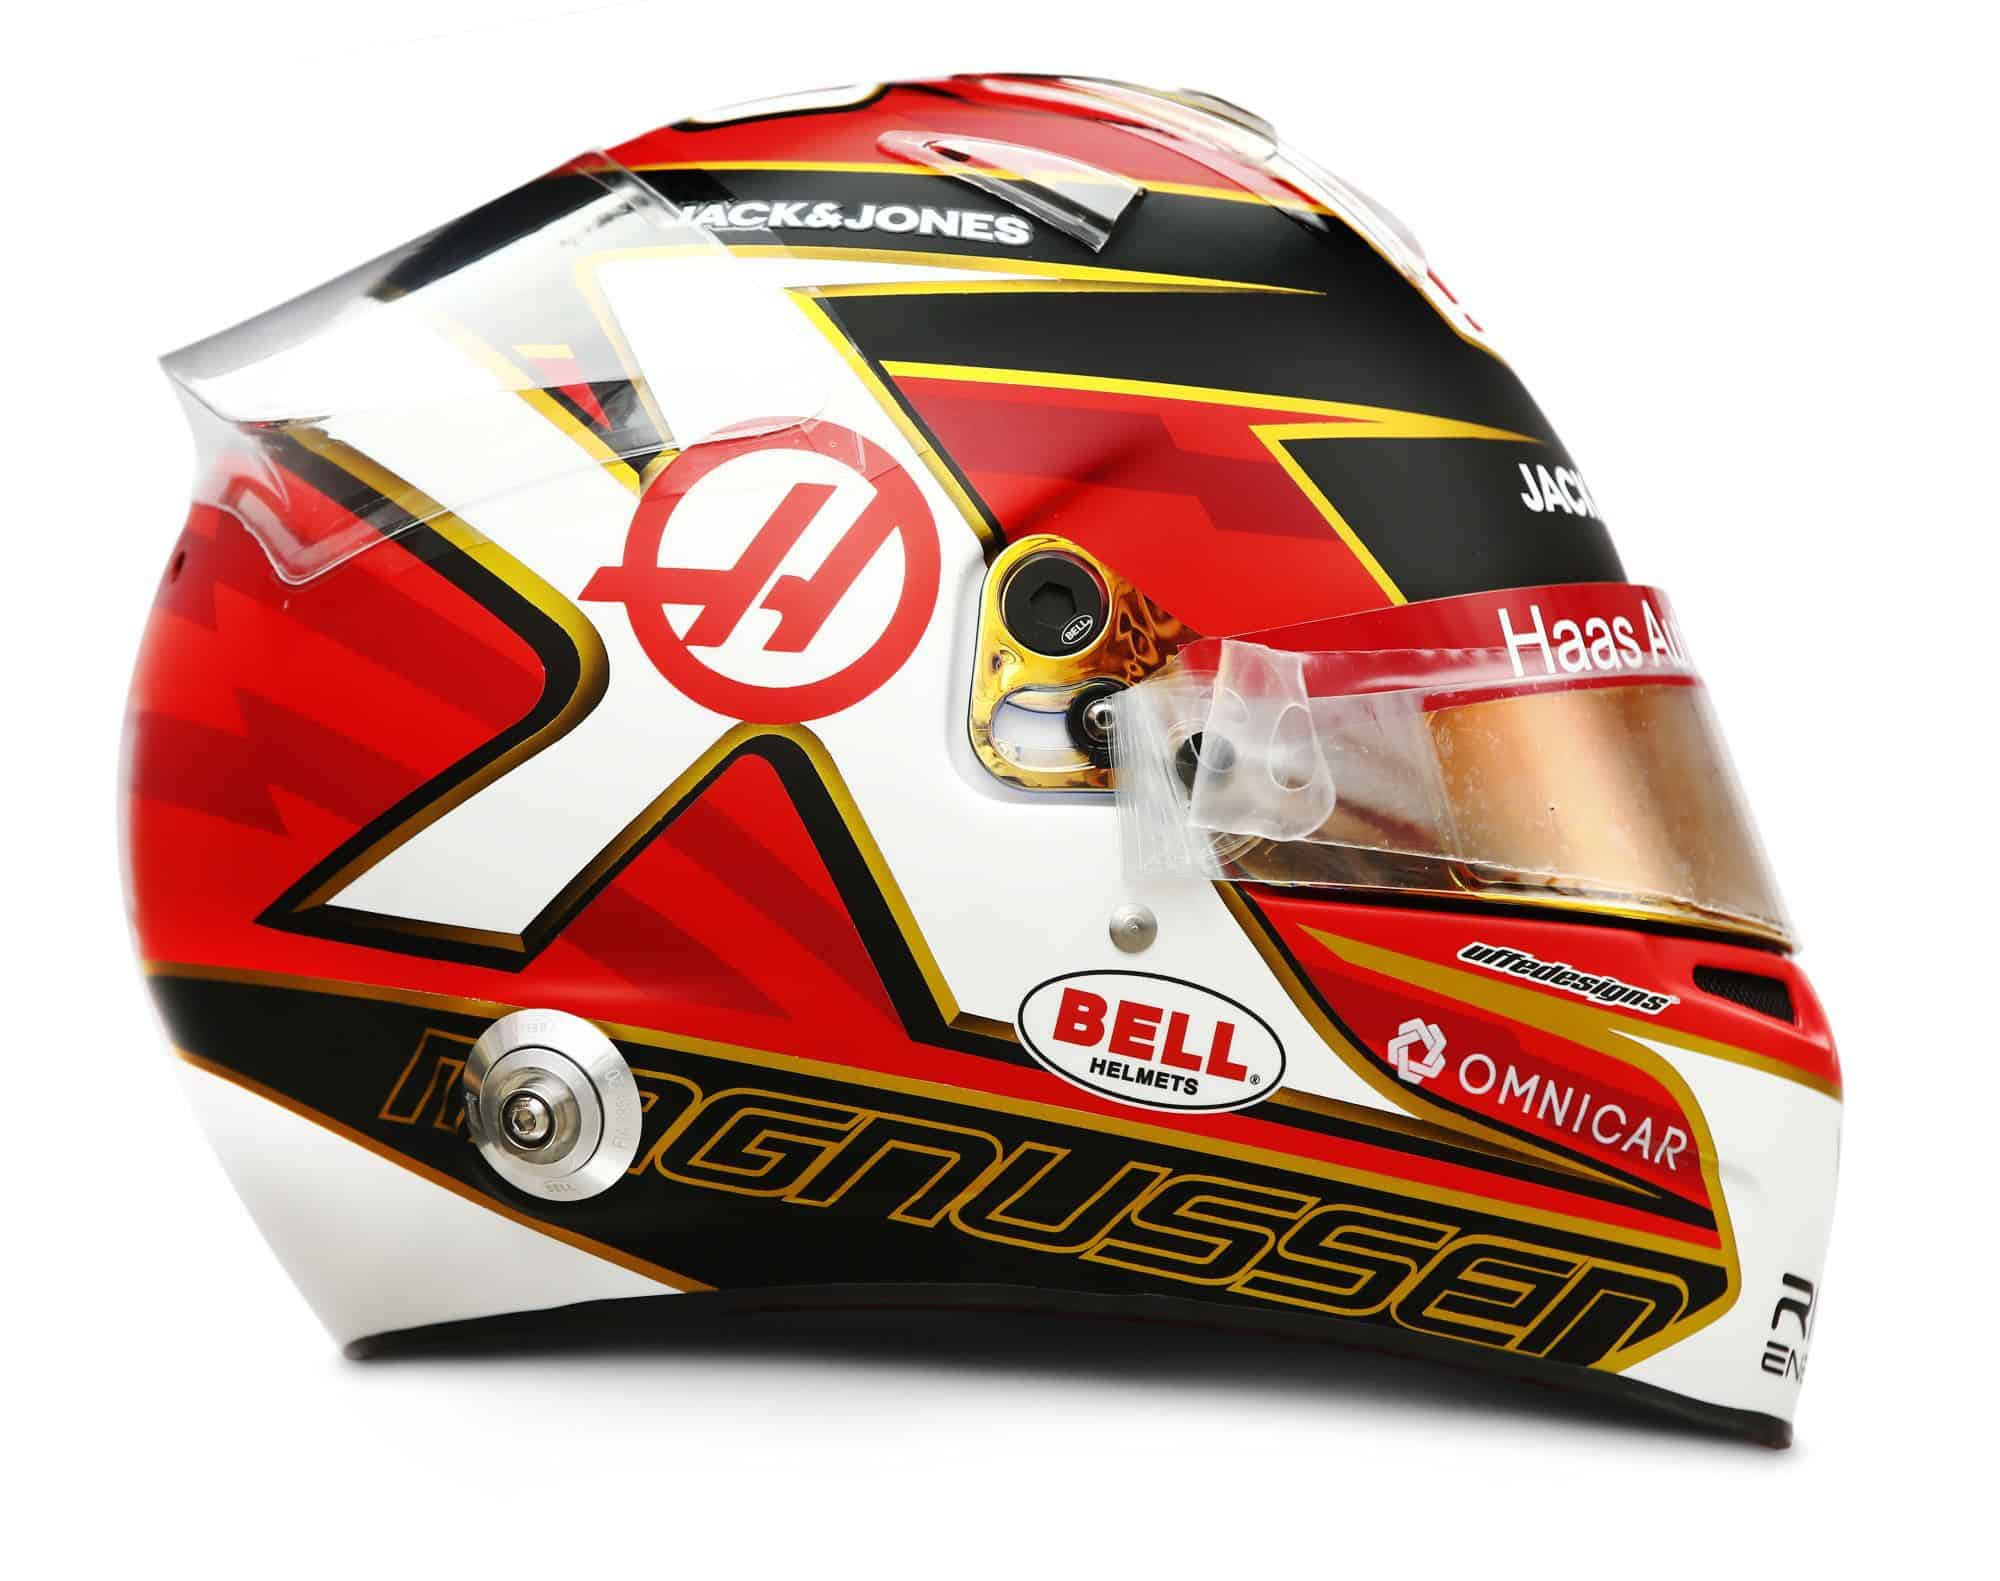 2019 Rich Energy Haas F1 Team Kevin Magnussen helmet right side Photo Haas Edited by MAXF1net